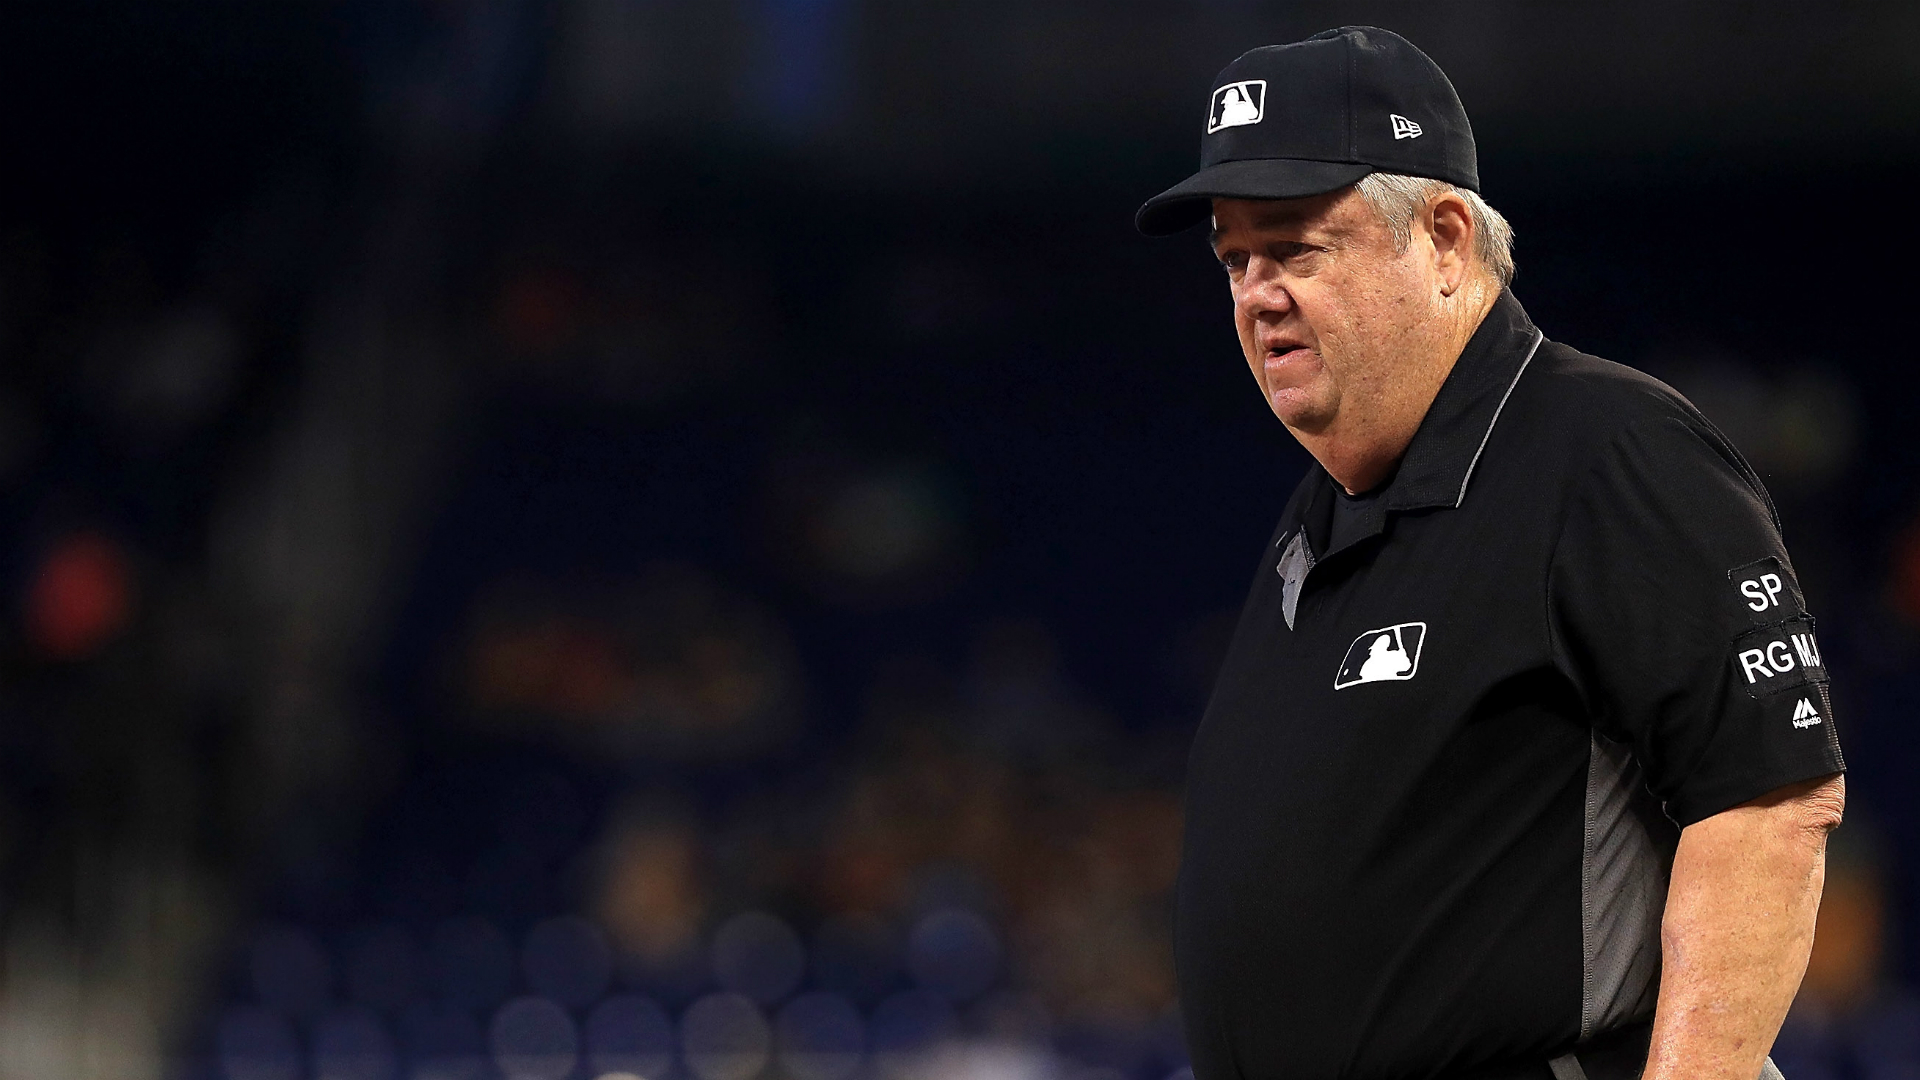 Major league umpires wear wristbands to protest 'escalating verbal attacks' from players